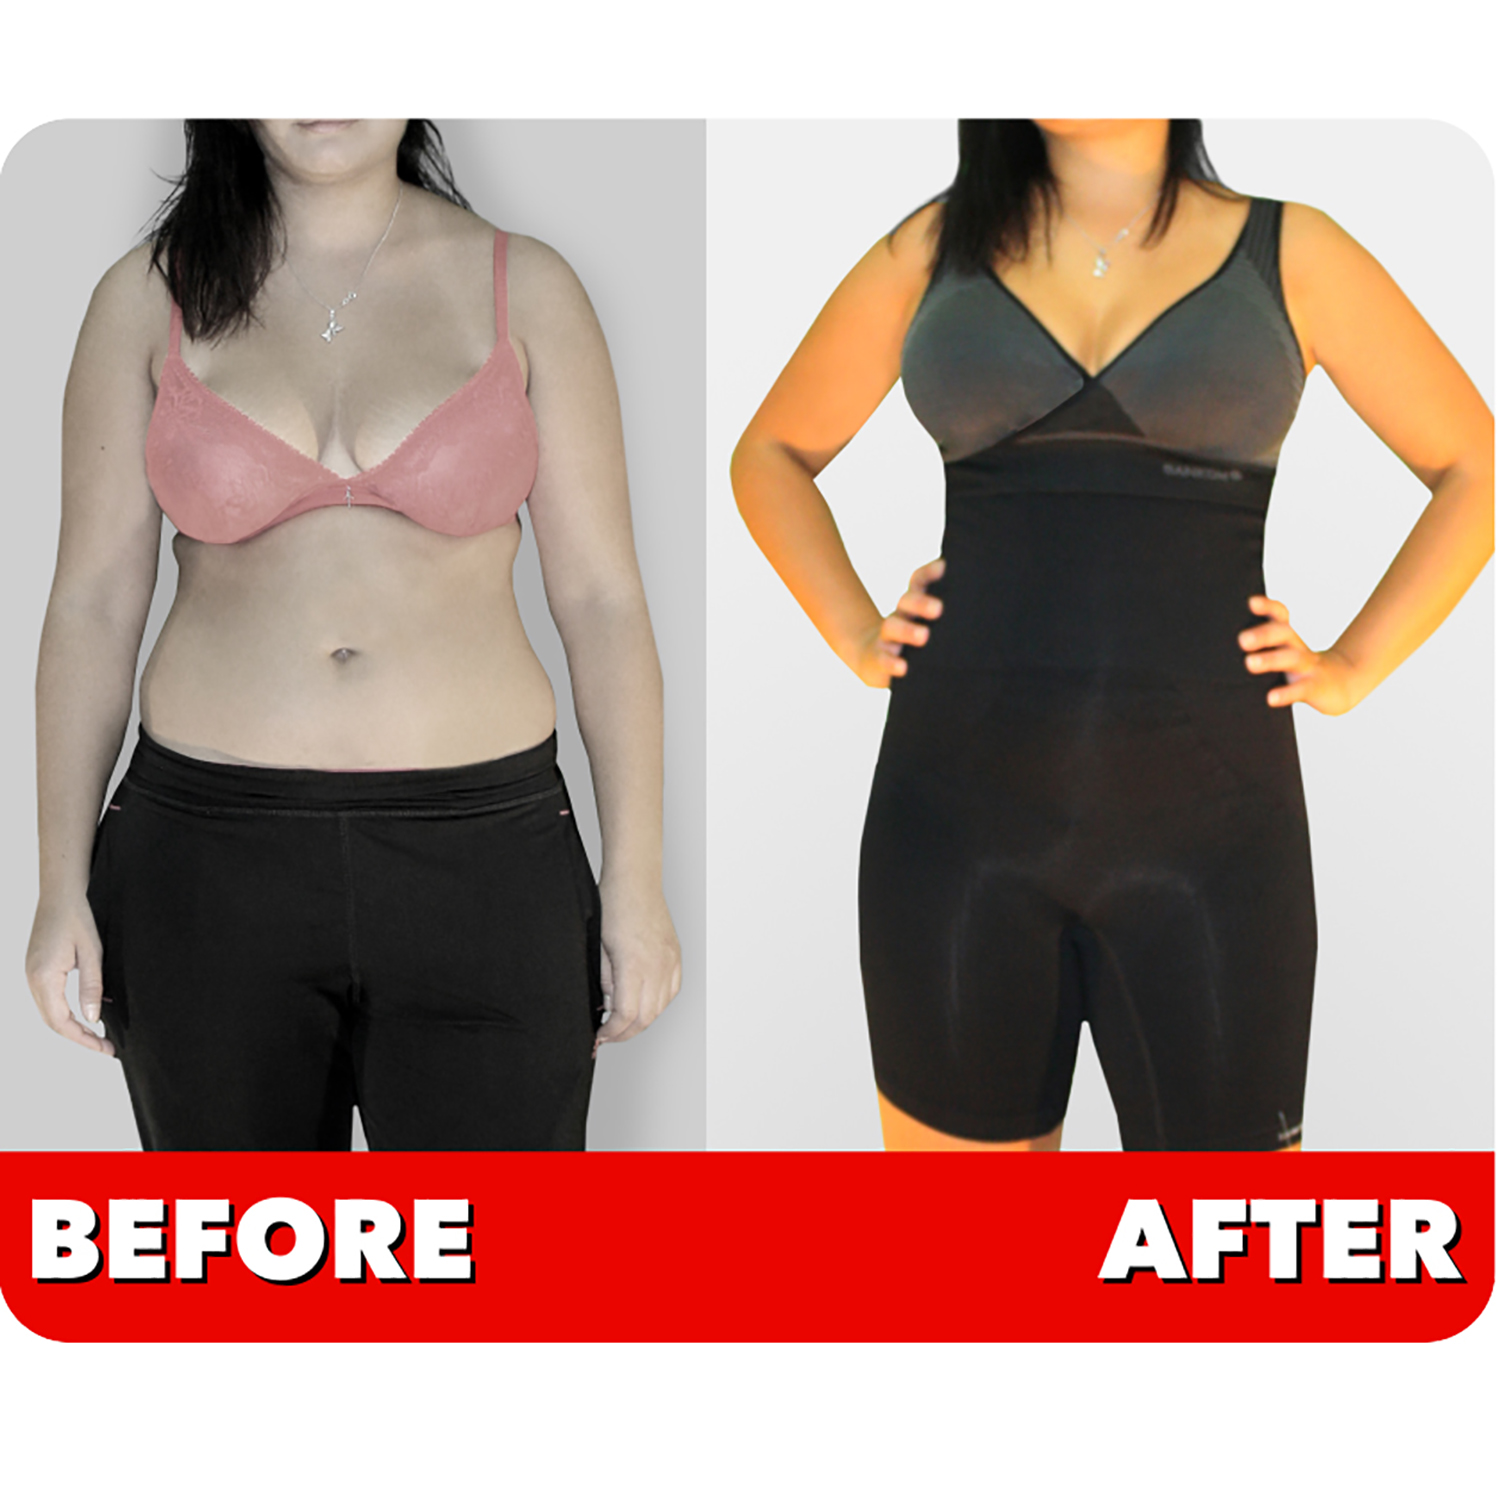 d7063be58ee New SANKOM Grey Slimming   Posture Shaper with Bamboo Fibers XS